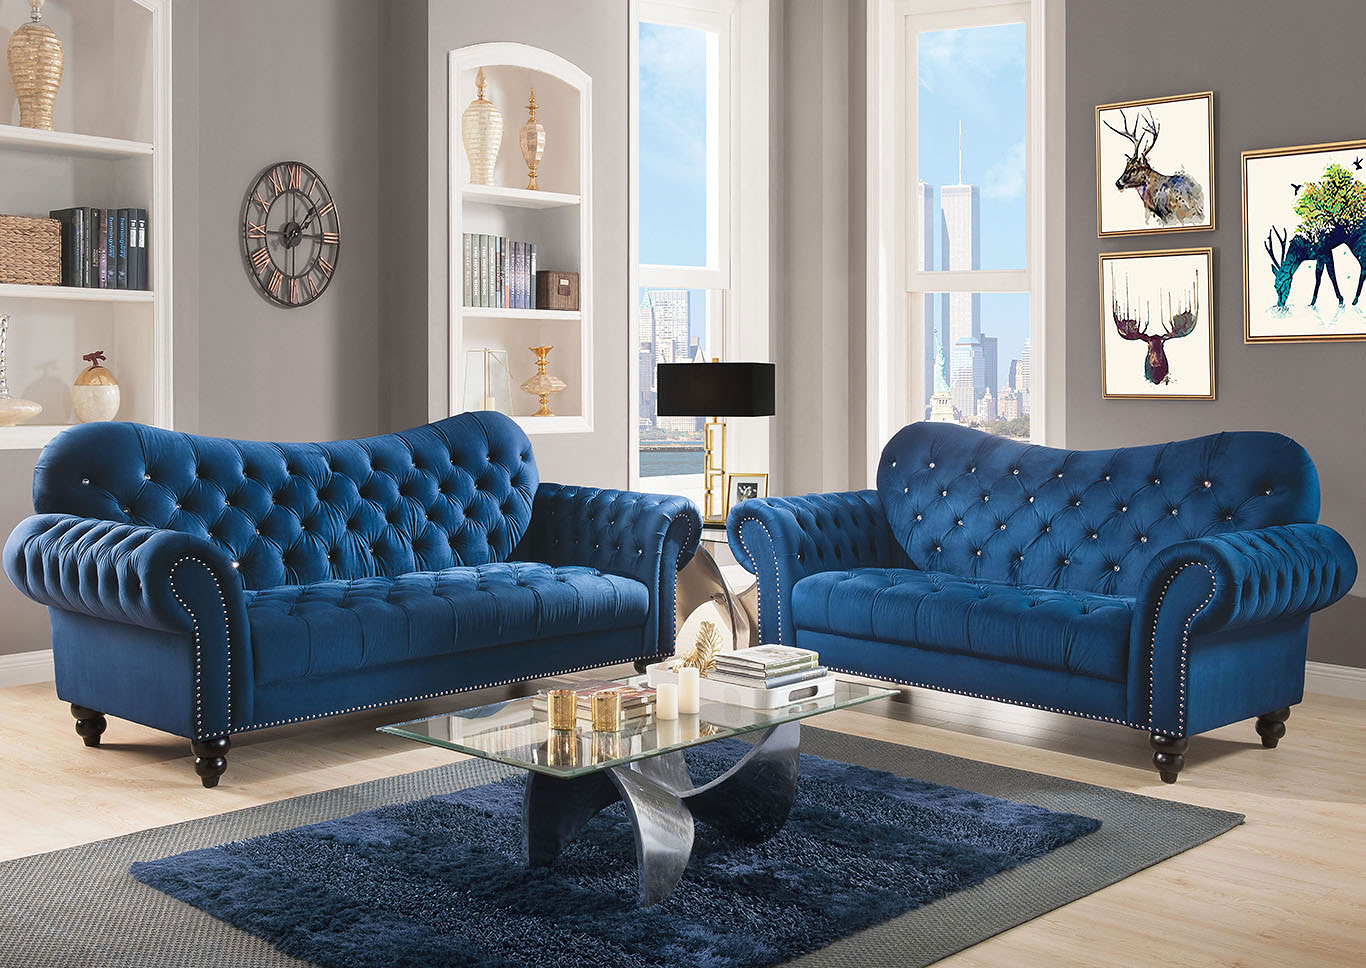 Iberis Navy Blue Sofa And Loveseat Best Buy Furniture And Mattress